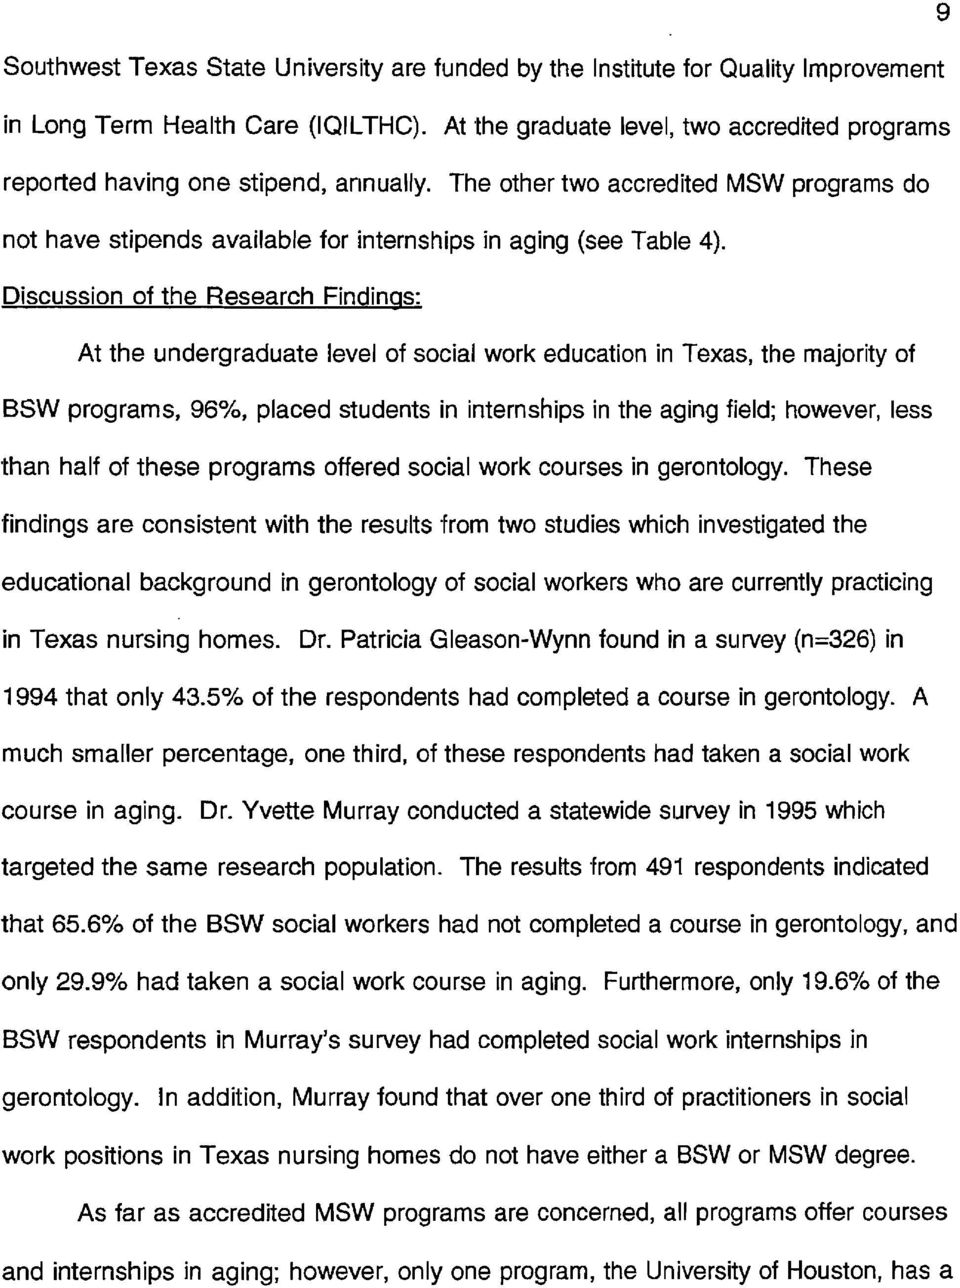 Discussion of the Research Findinas: At the undergraduate level of social work education in Texas, the majority of BSW programs, 96%, placed students in internships in the aging field; however, less